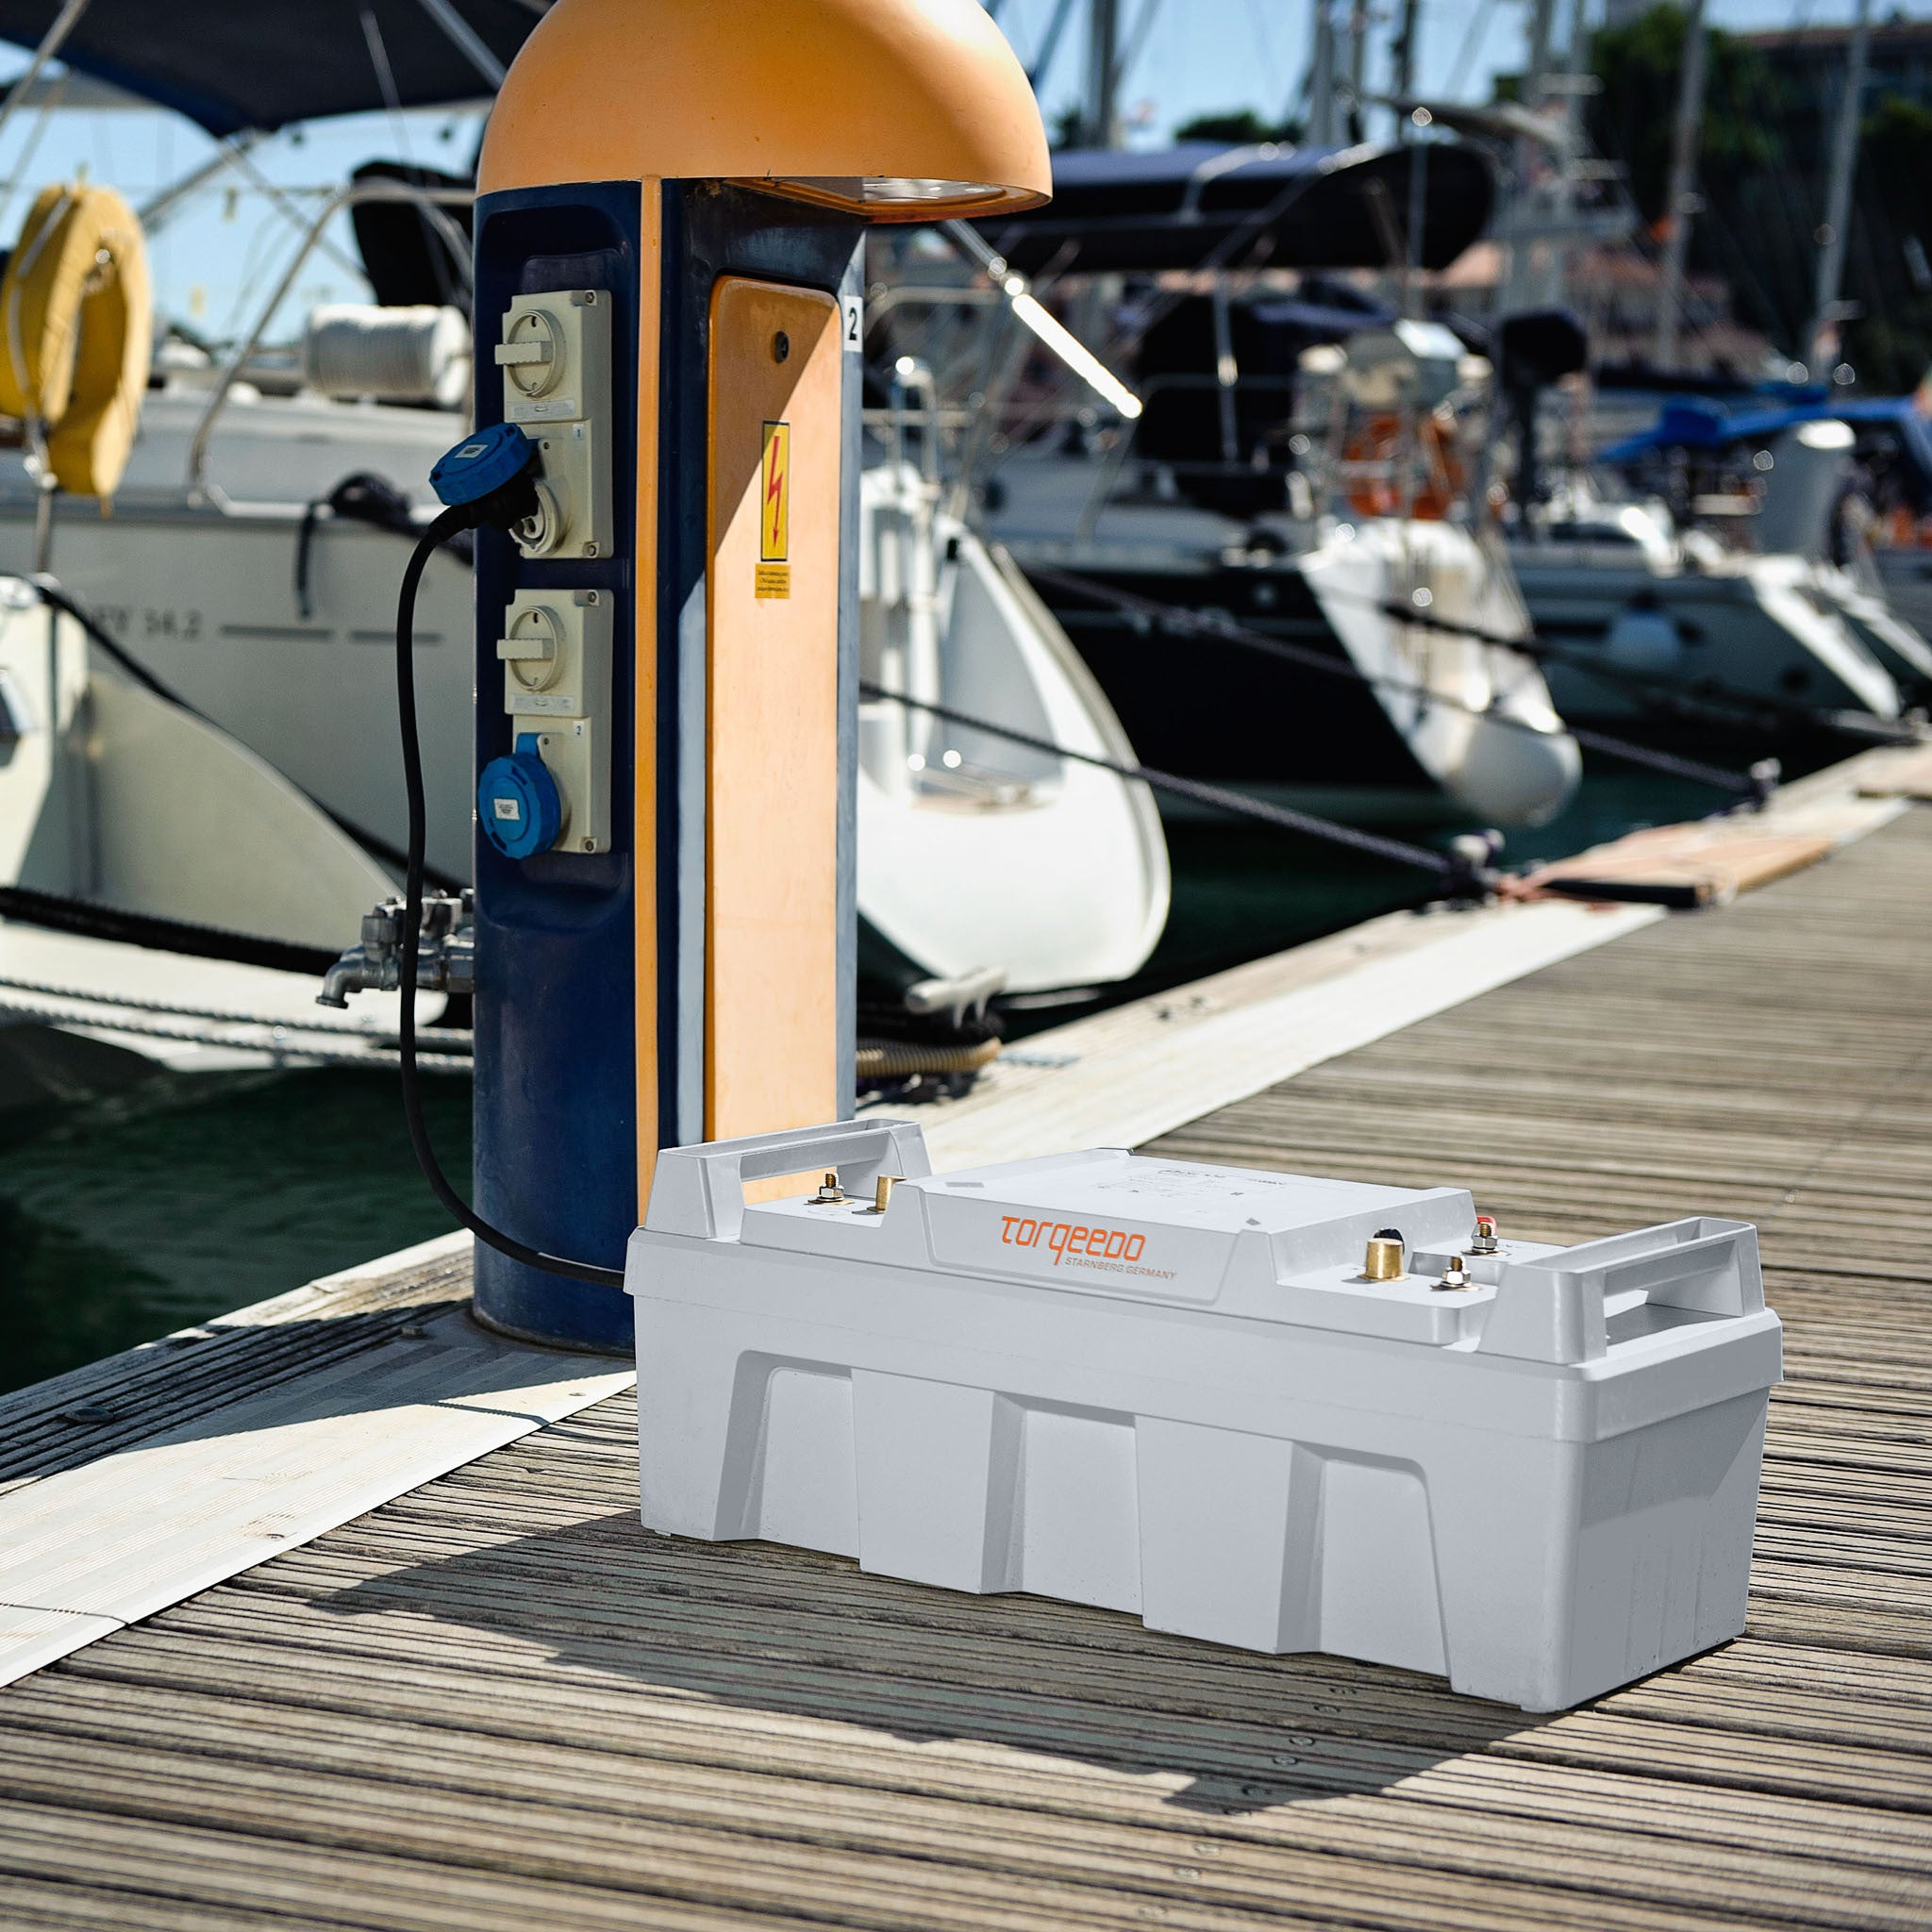 Torqeedo Power 26-104 High-performance Lithium Battery sold online at Wee Boats